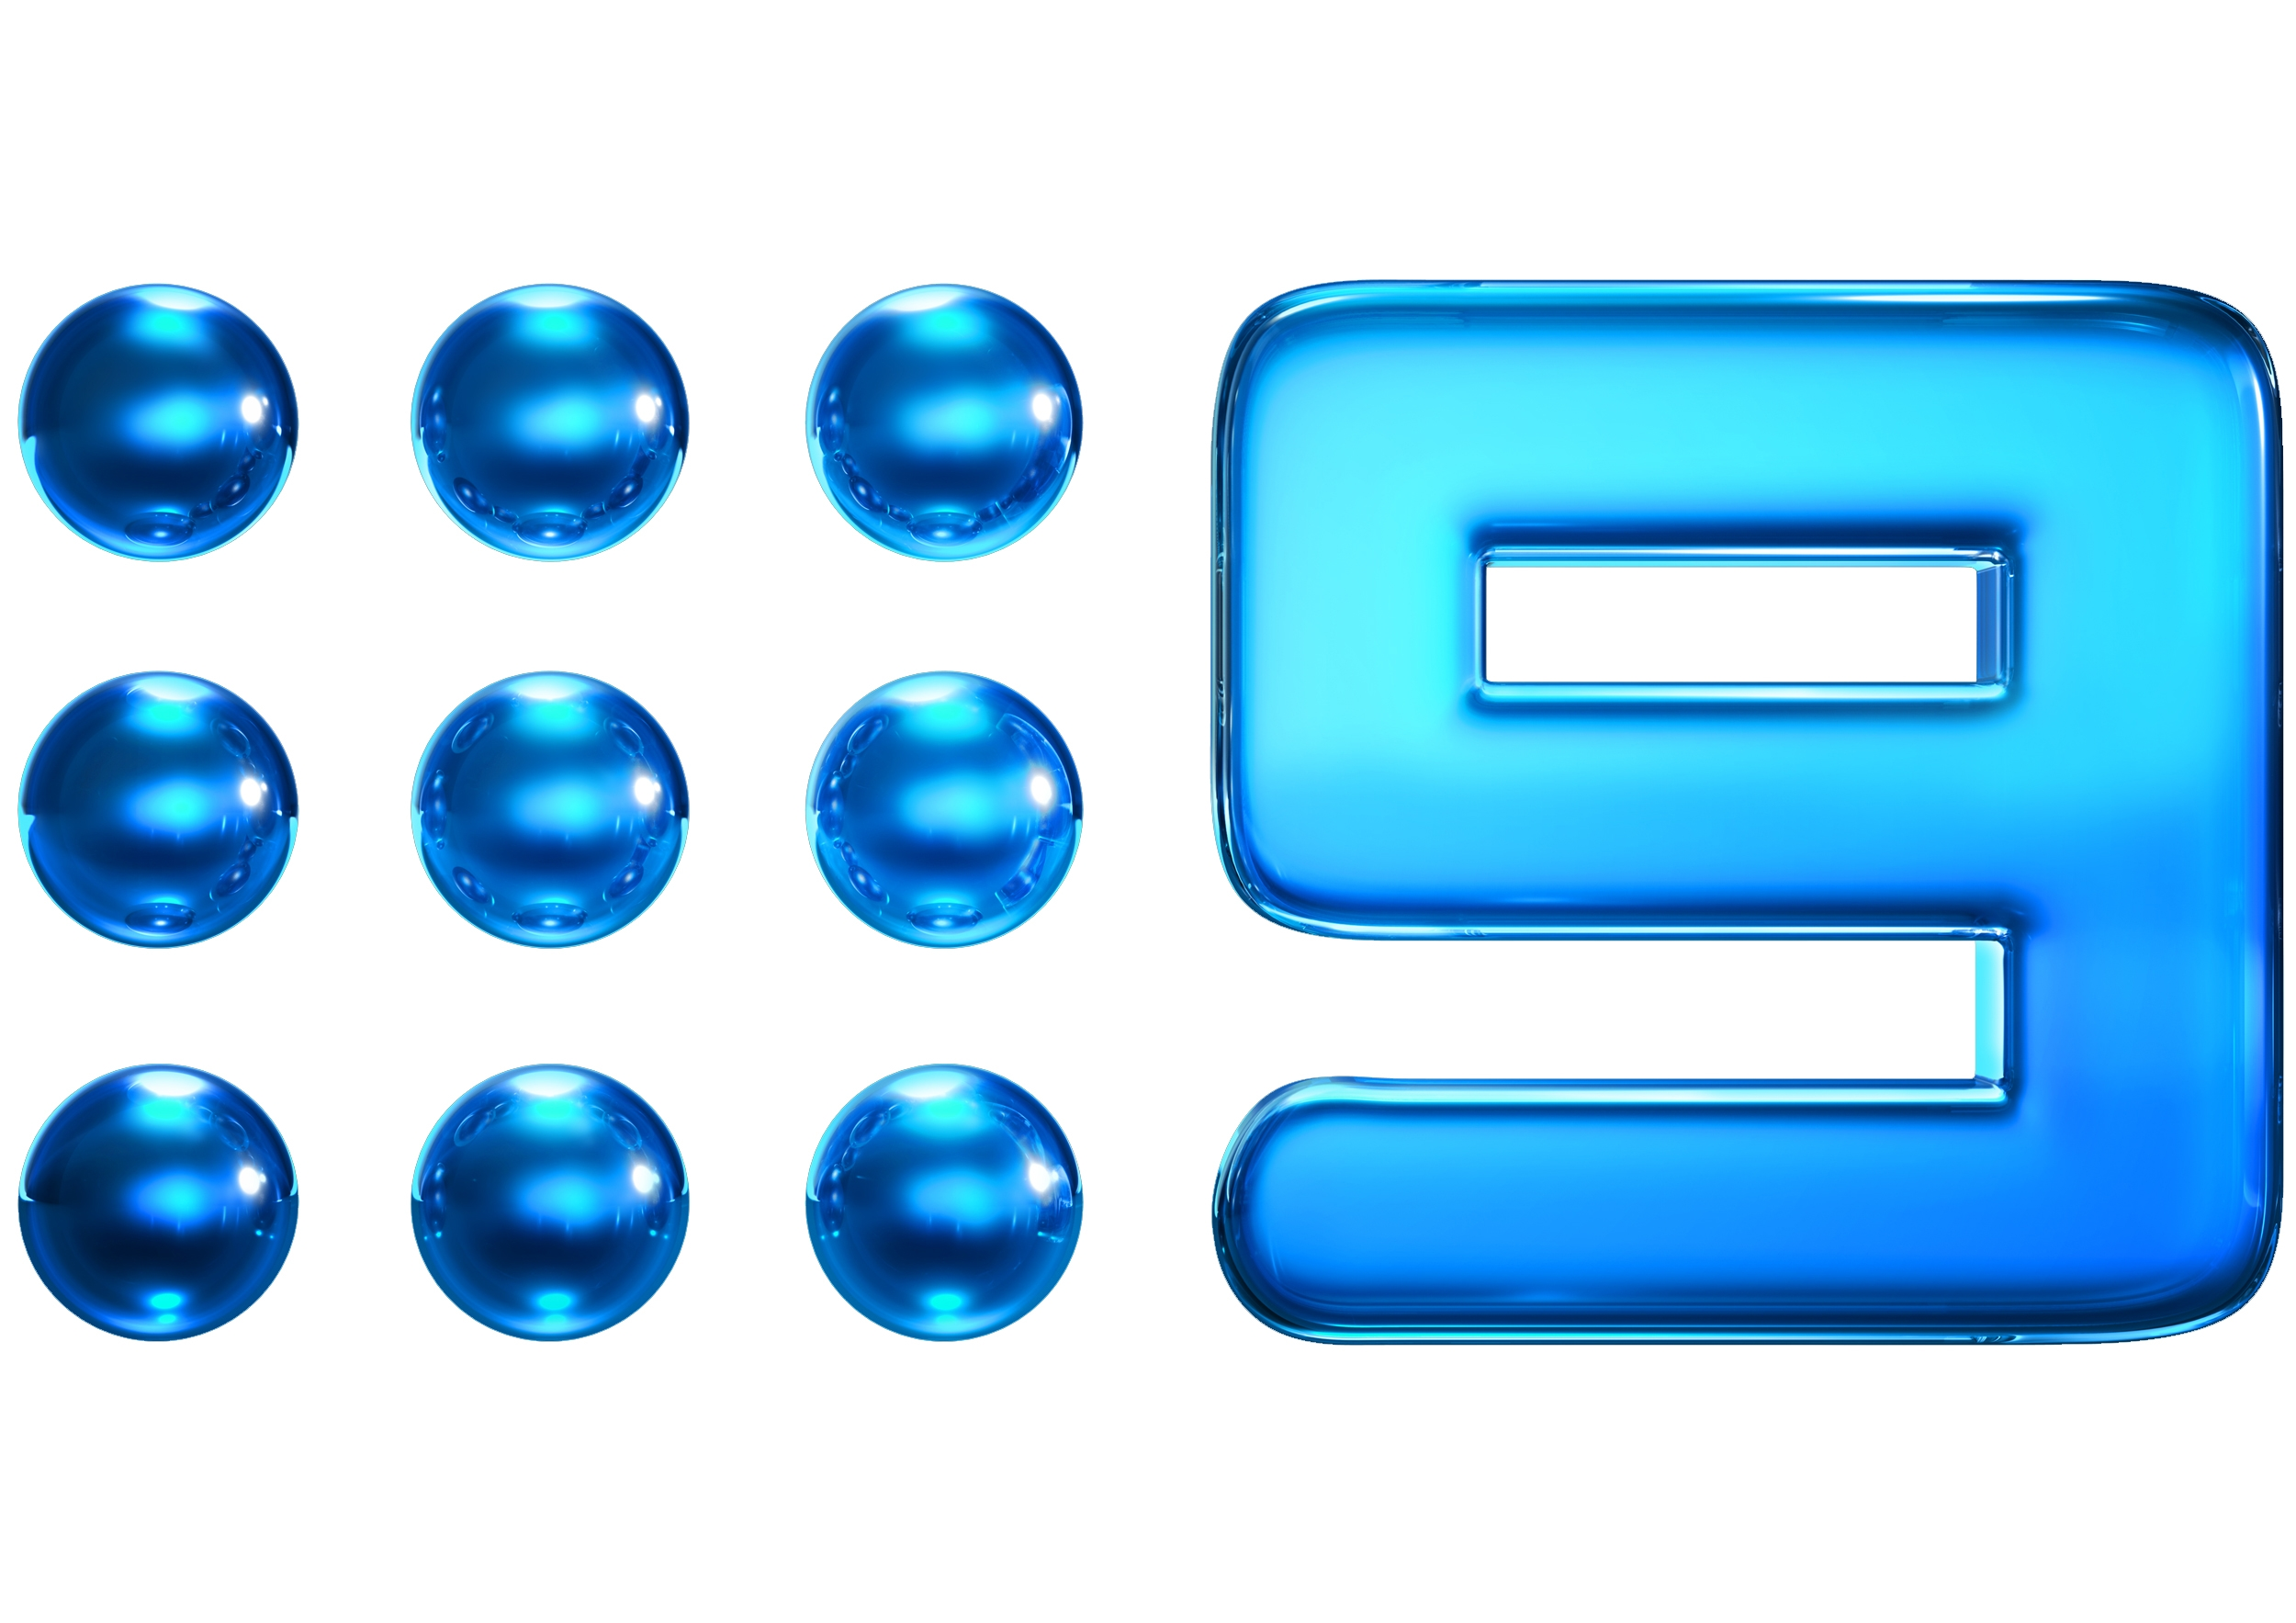 Channel9 logo